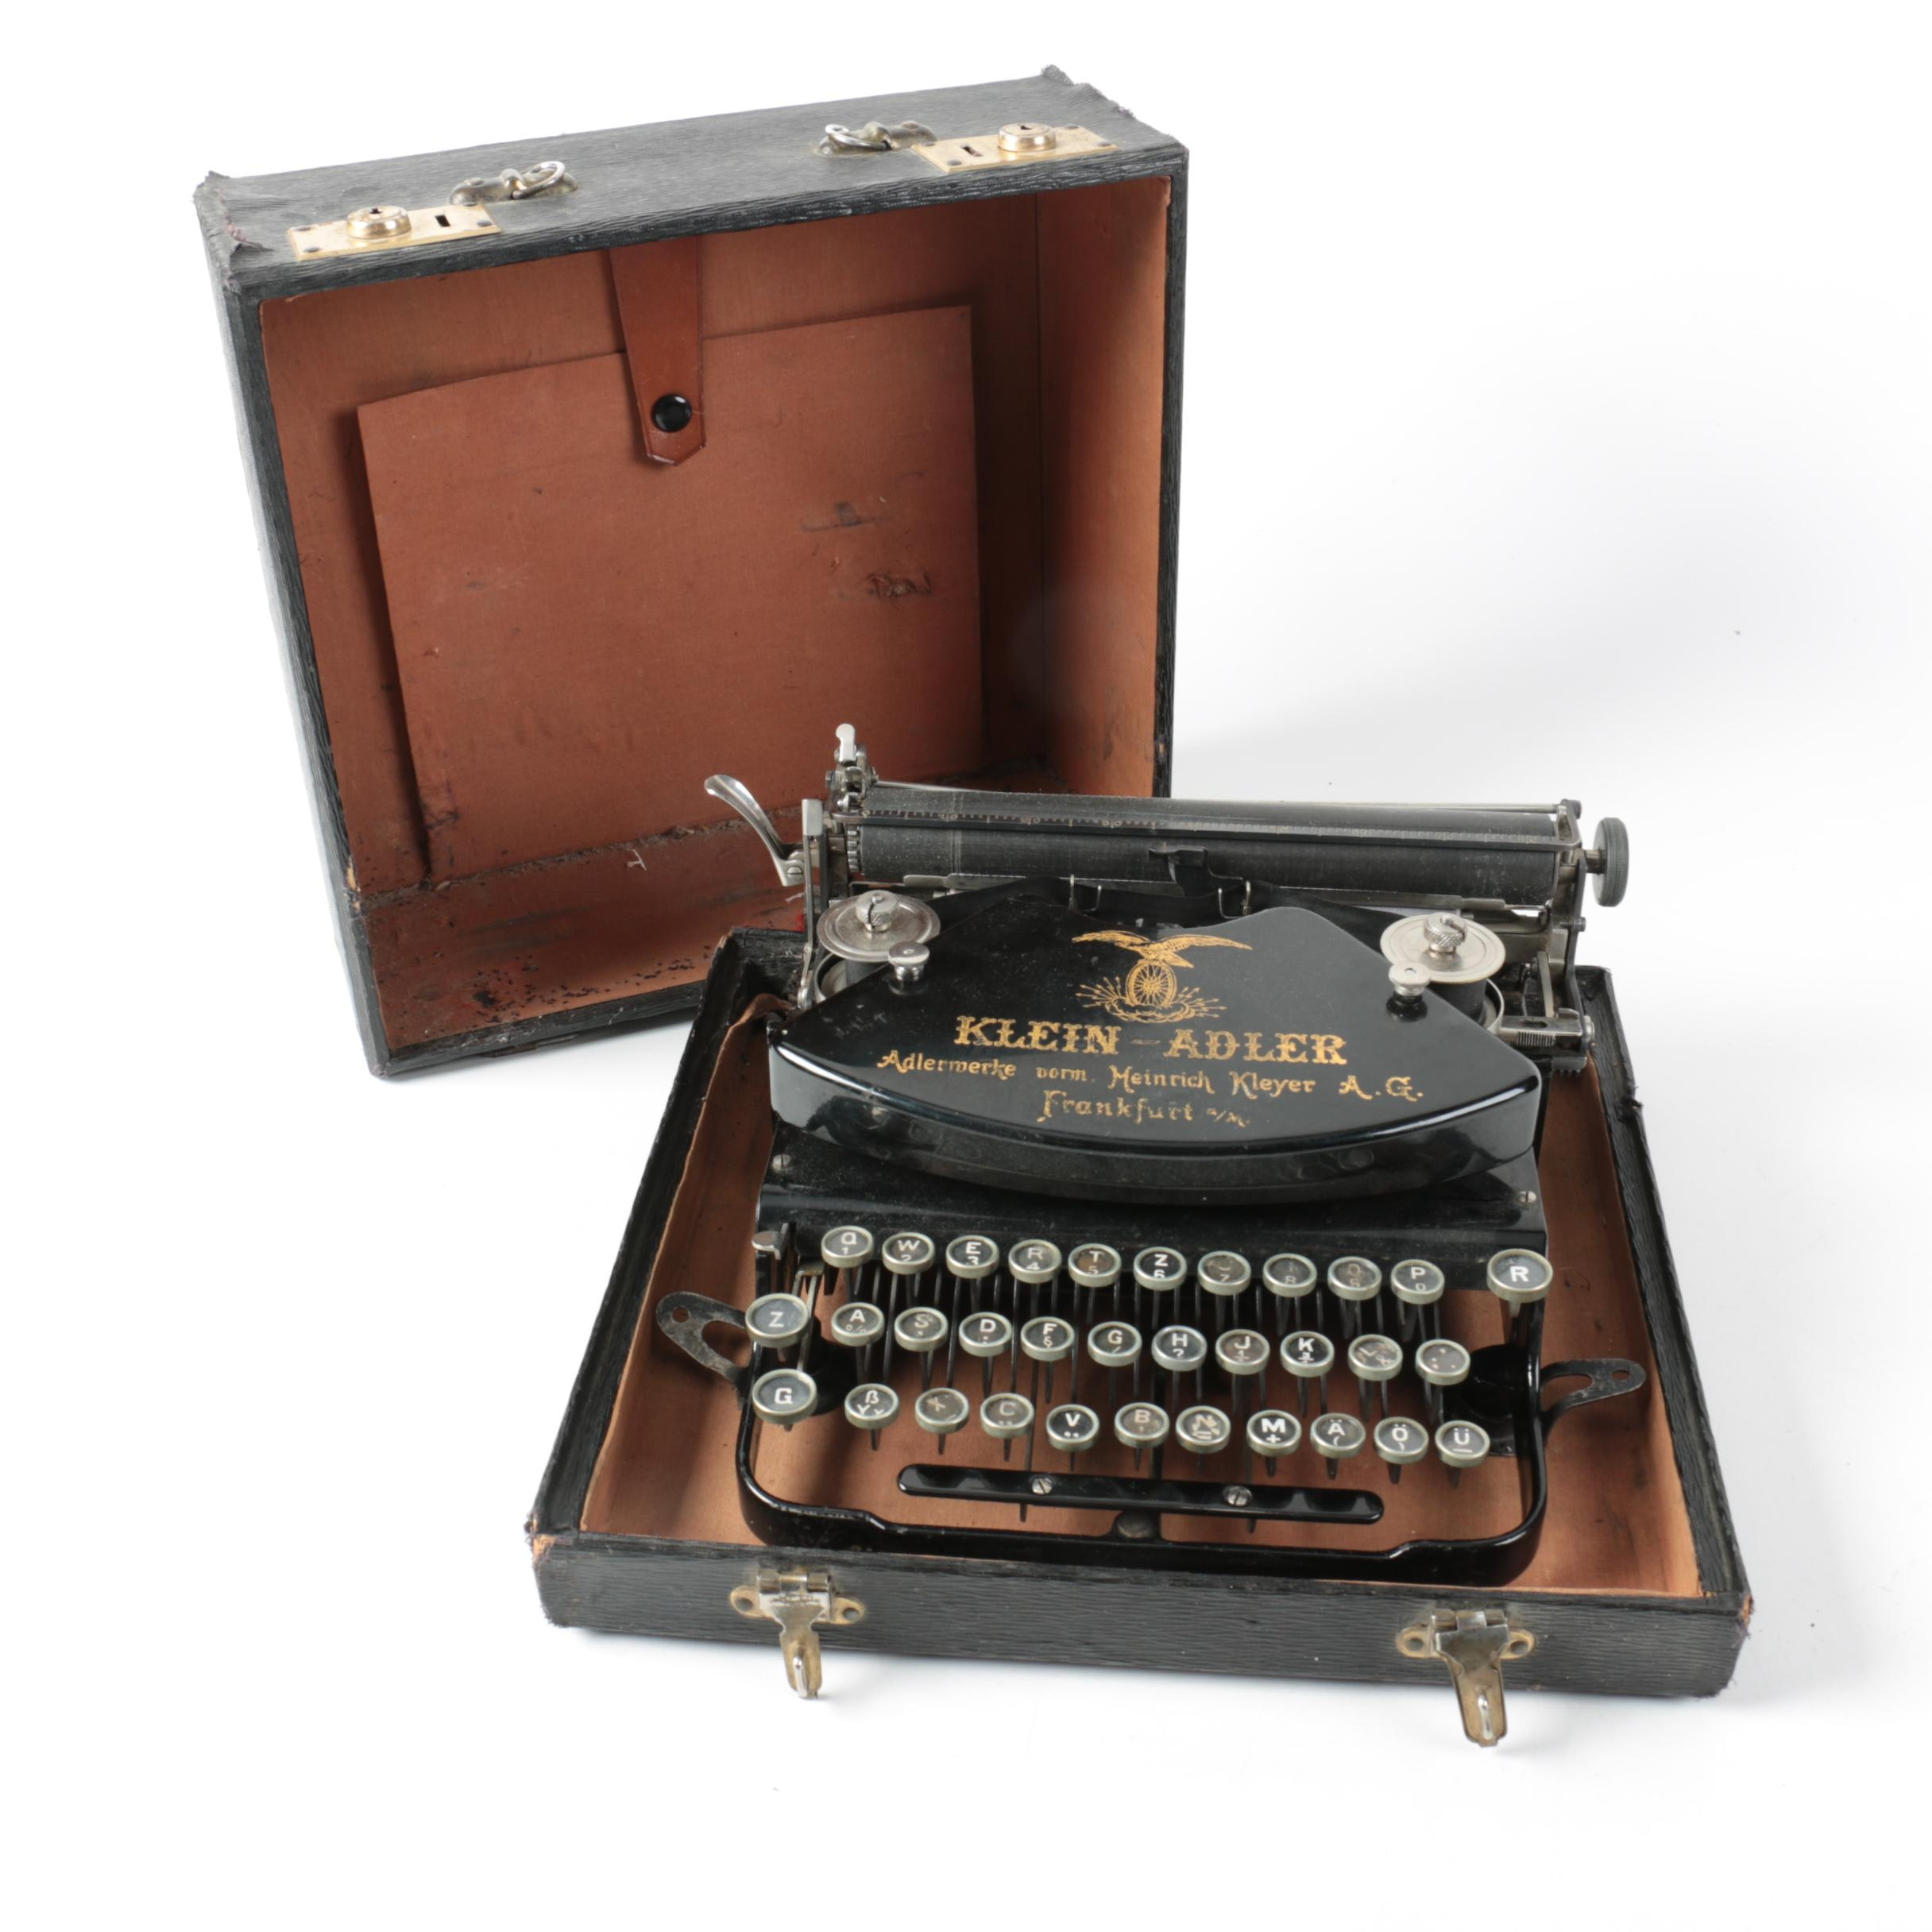 1910s-Era German Klein-Adler Portable Typewriter